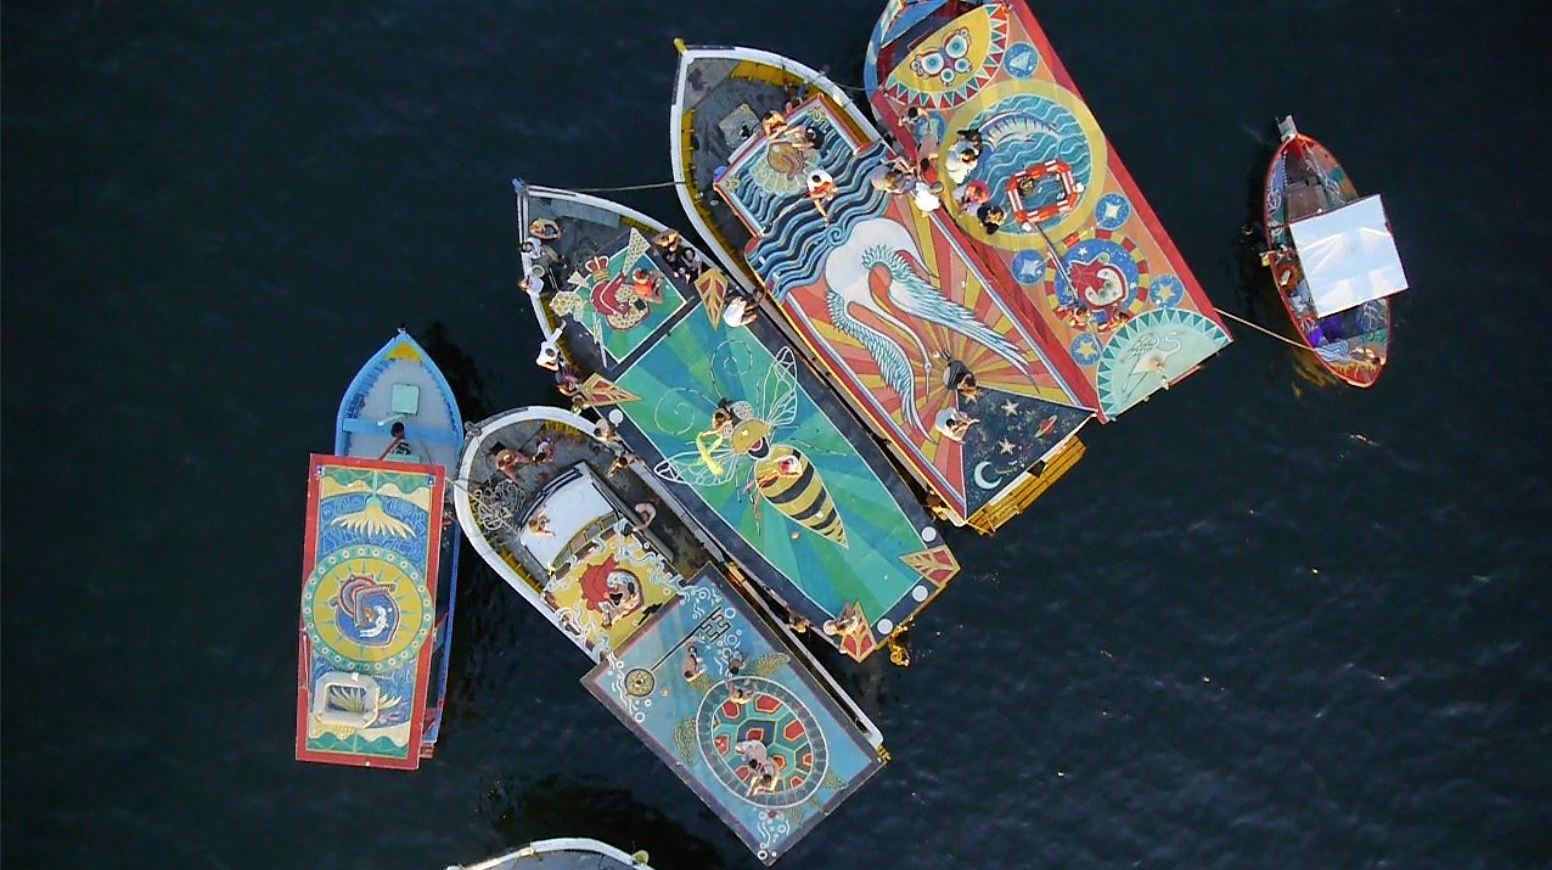 Aerial View of 6 boats at FlutuArte's closing event.    In 2012, Maxine co-created  FlutuArte , a public art installation where 45 international artists joined to paint murals on the rooftops of 60 fishing boats in a historic harbor in Rio de Janeiro, Brazil. FlutuArte brought not only new vibrant colors to this fishing community, but also a new economy of tourism.